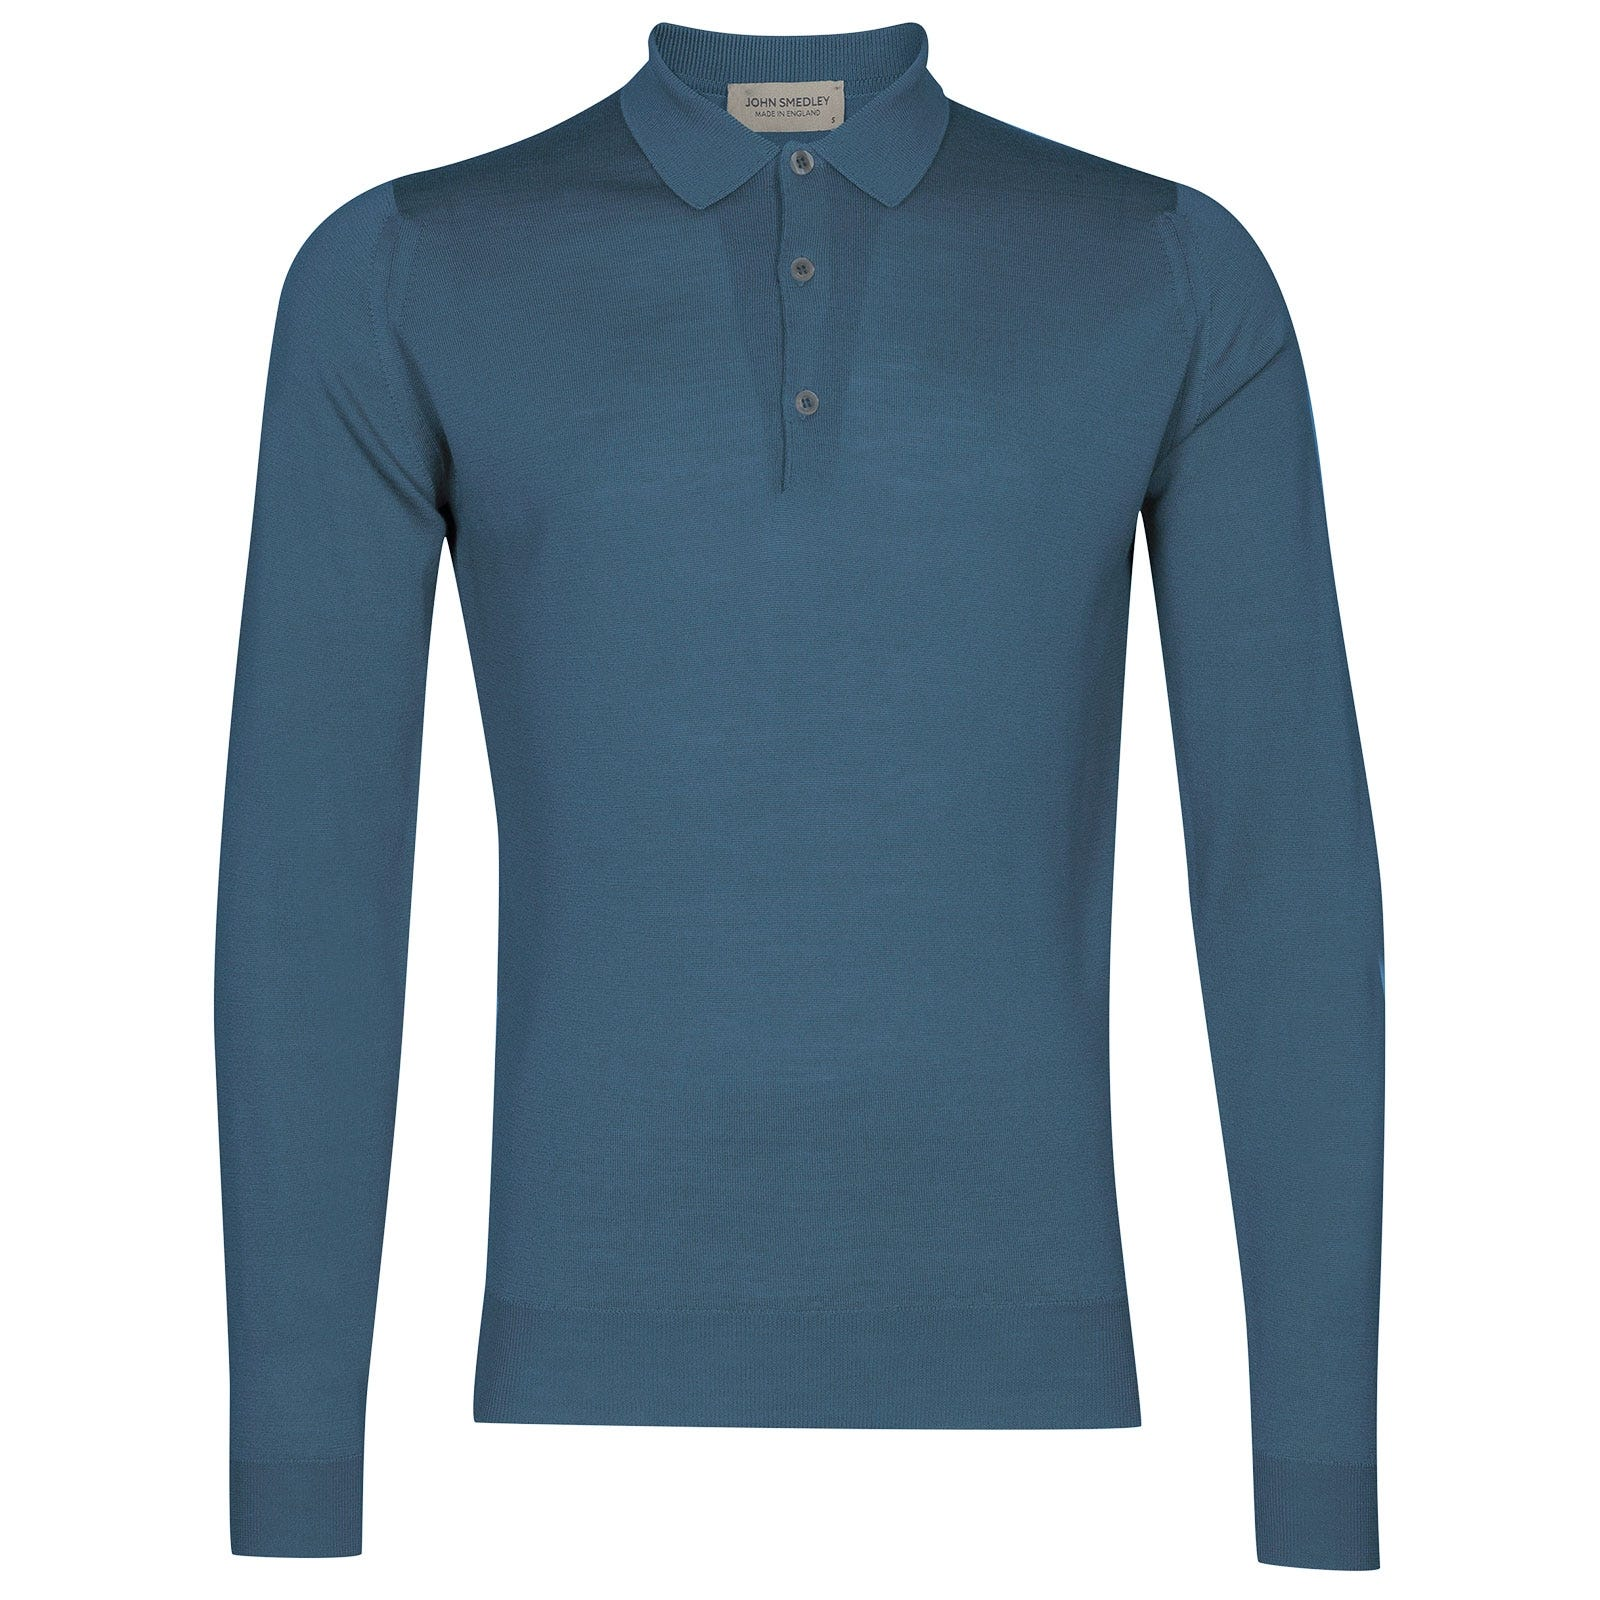 John Smedley Belper Merino Wool Shirt in Bias Blue-XXL